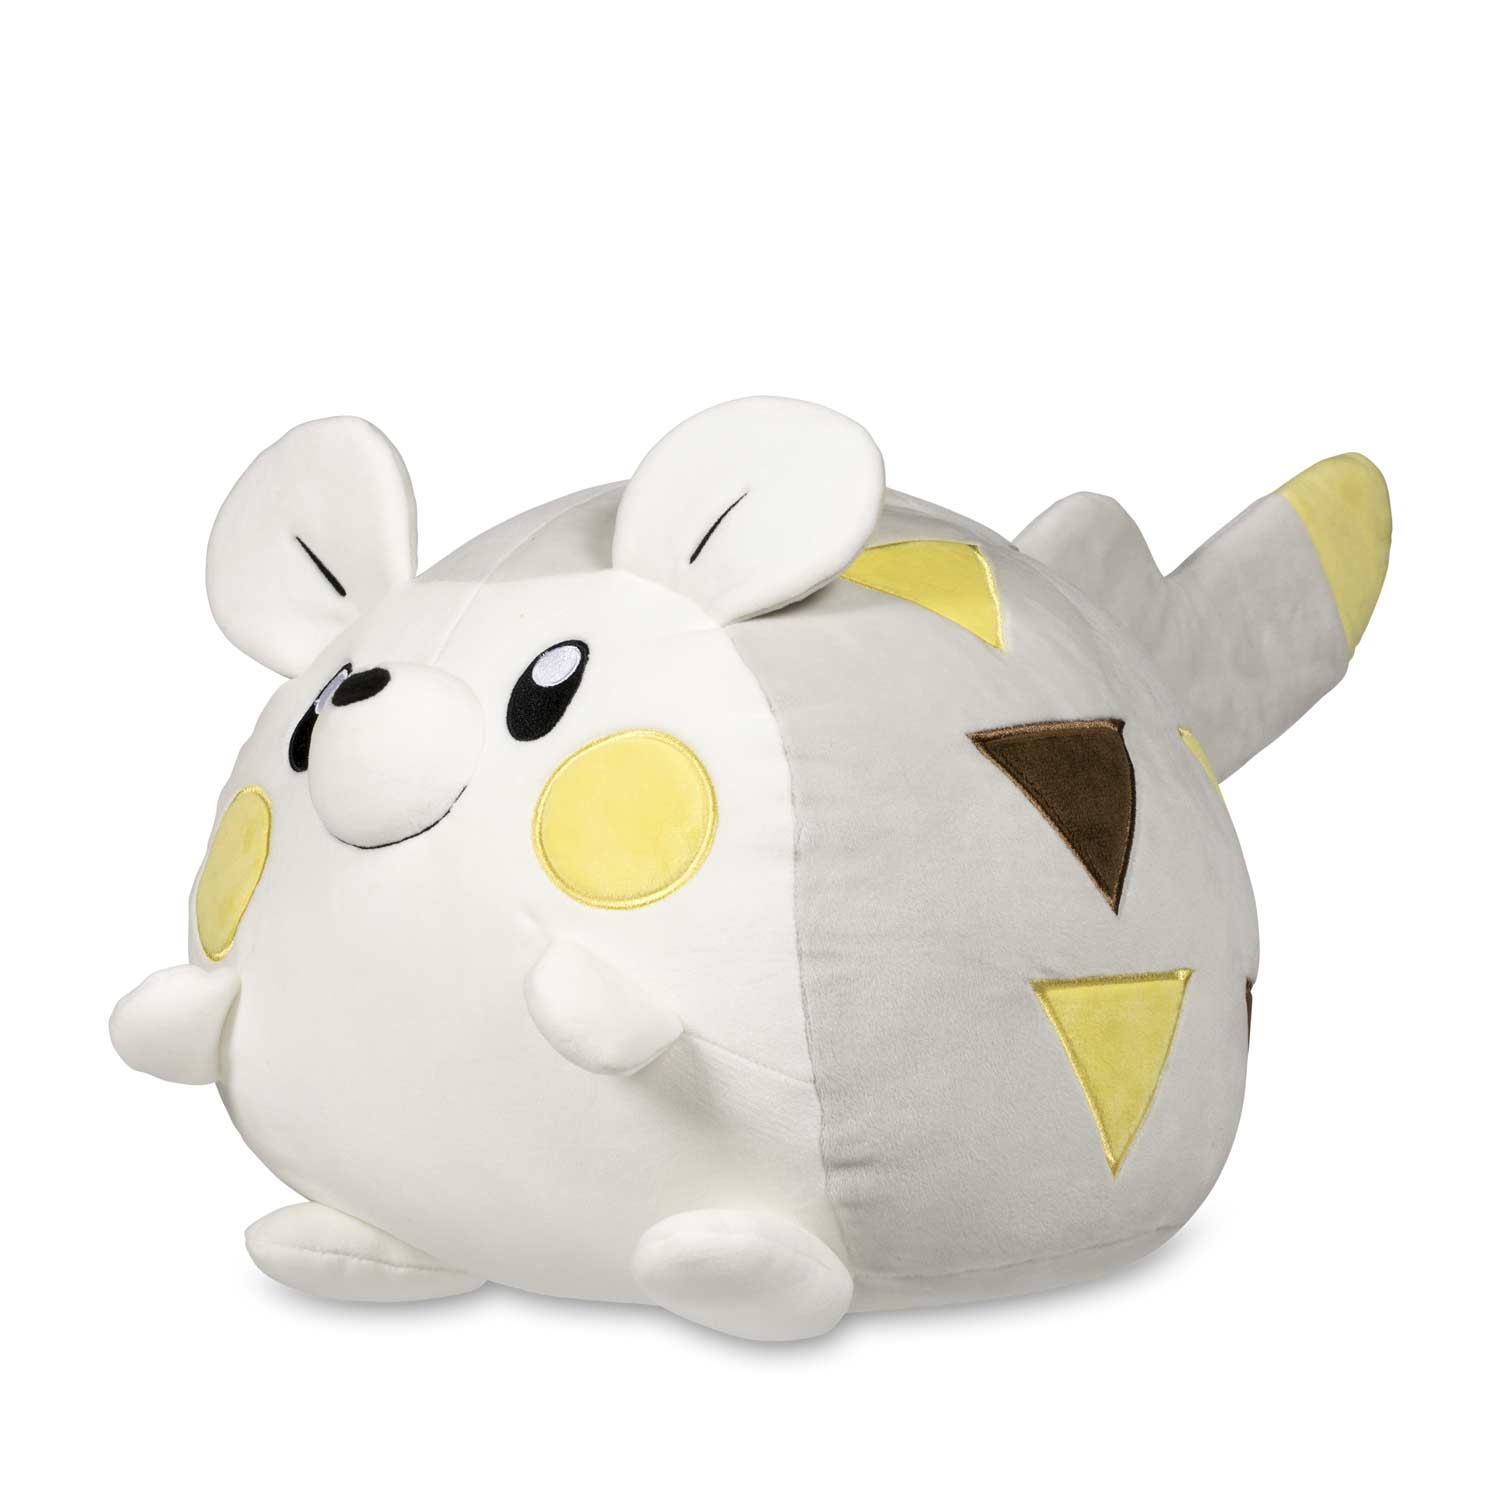 Togedemaru Squishy Plush